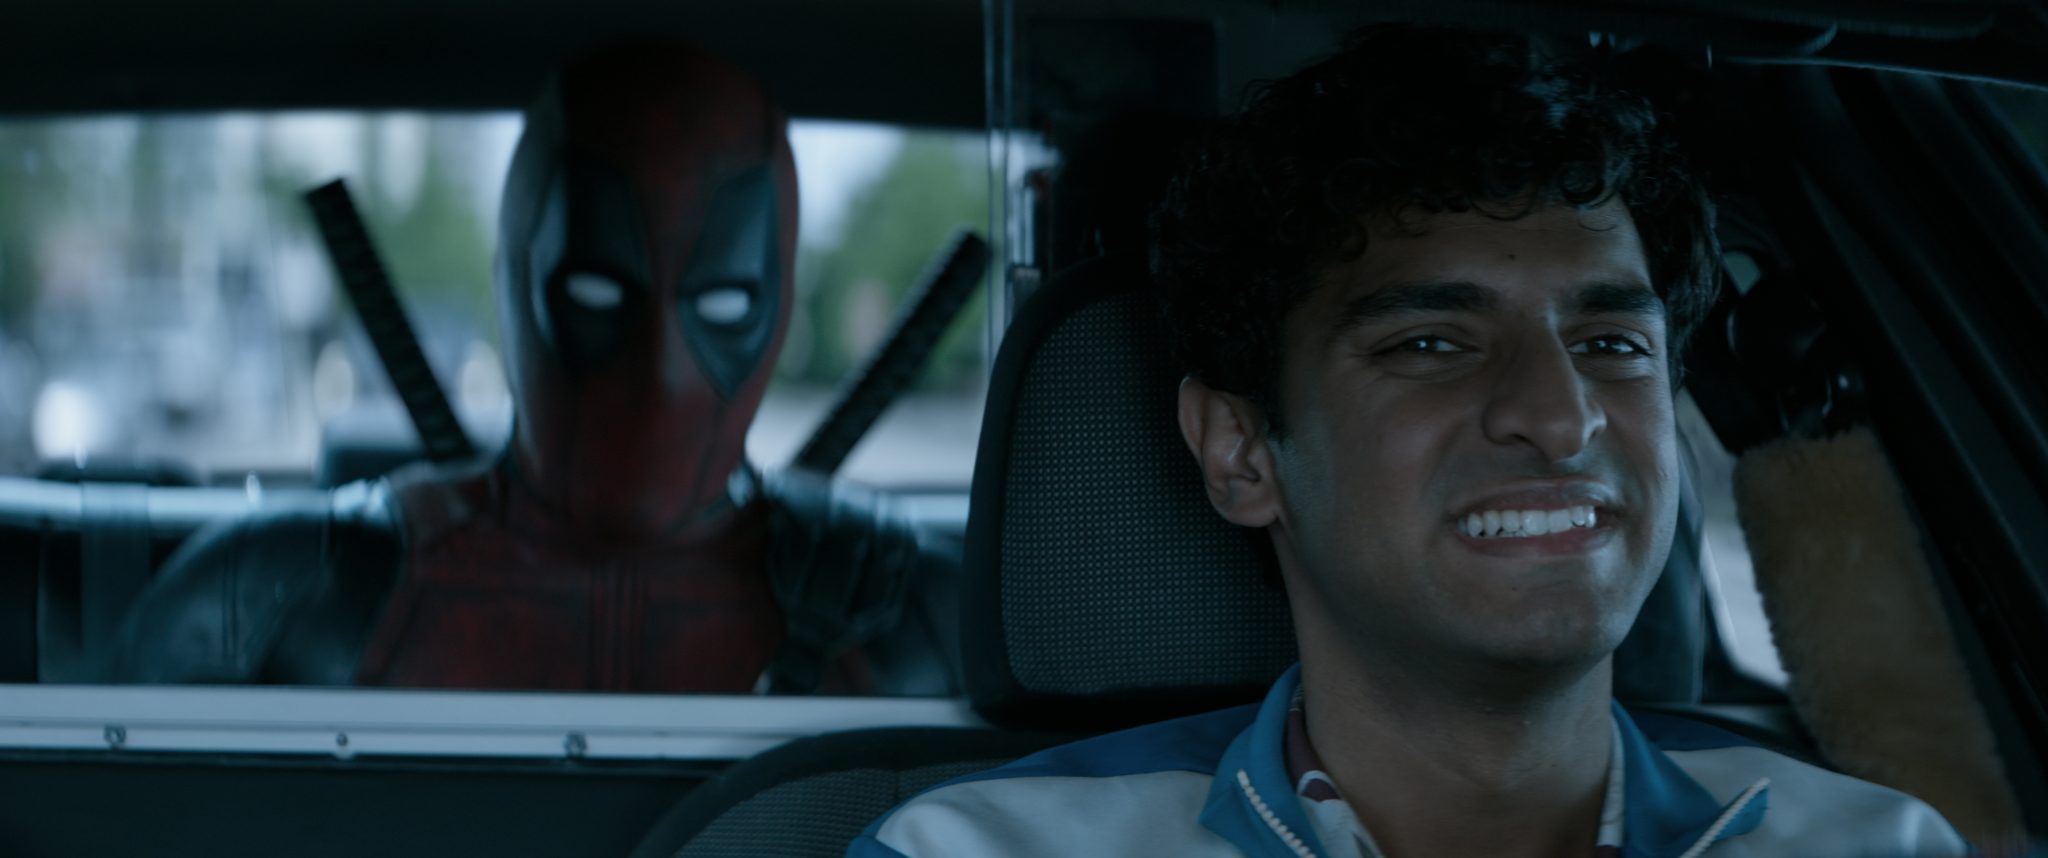 Deadpool 2: Ryan Reynolds (Deadpool) and Karan Soni (Dopinder)